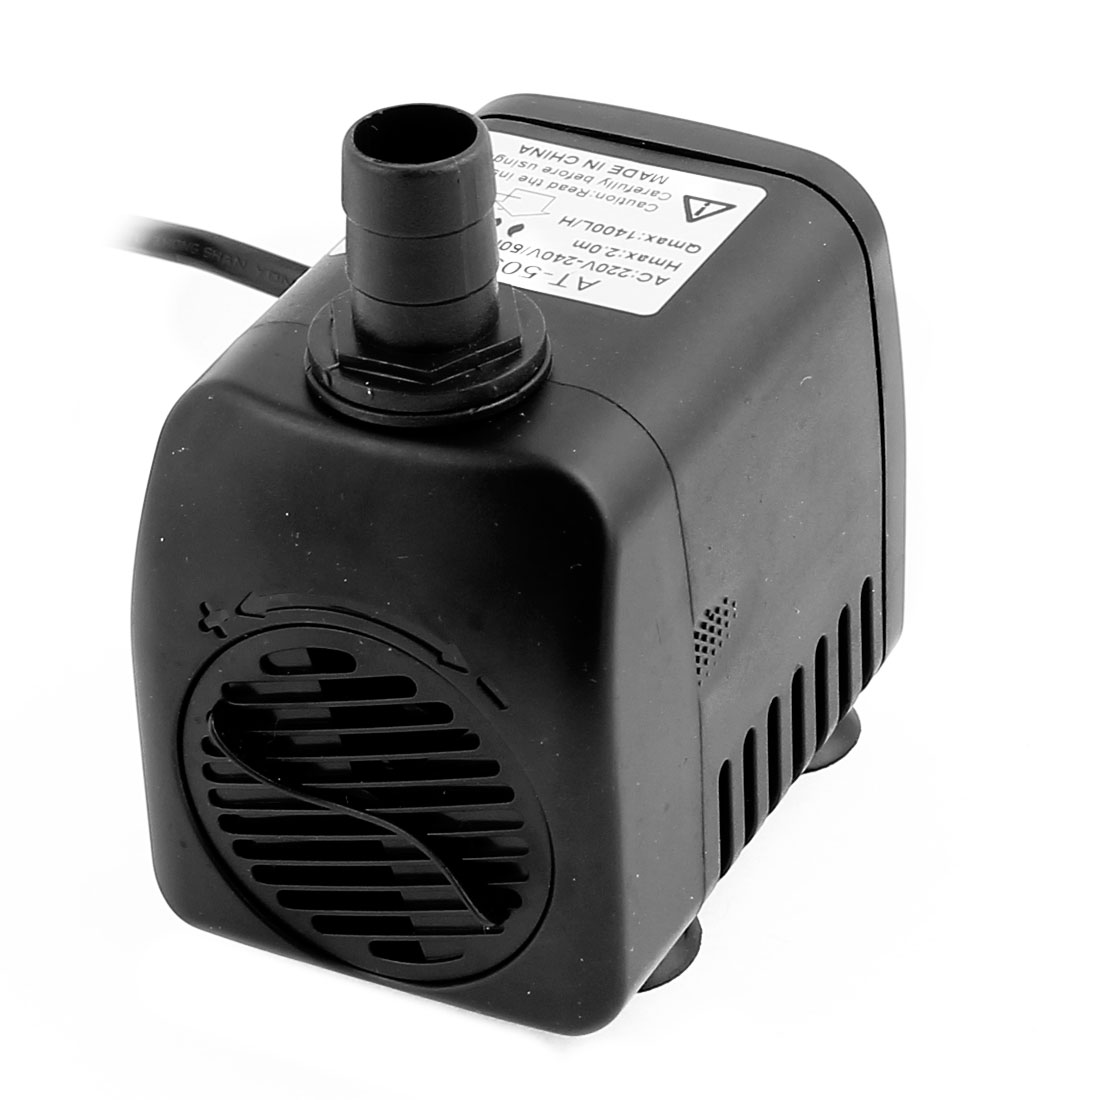 AC 220V-240V AU Plug 28W Electric Submersible Water Pump for Aquarium Fish Tank Fountain Pond